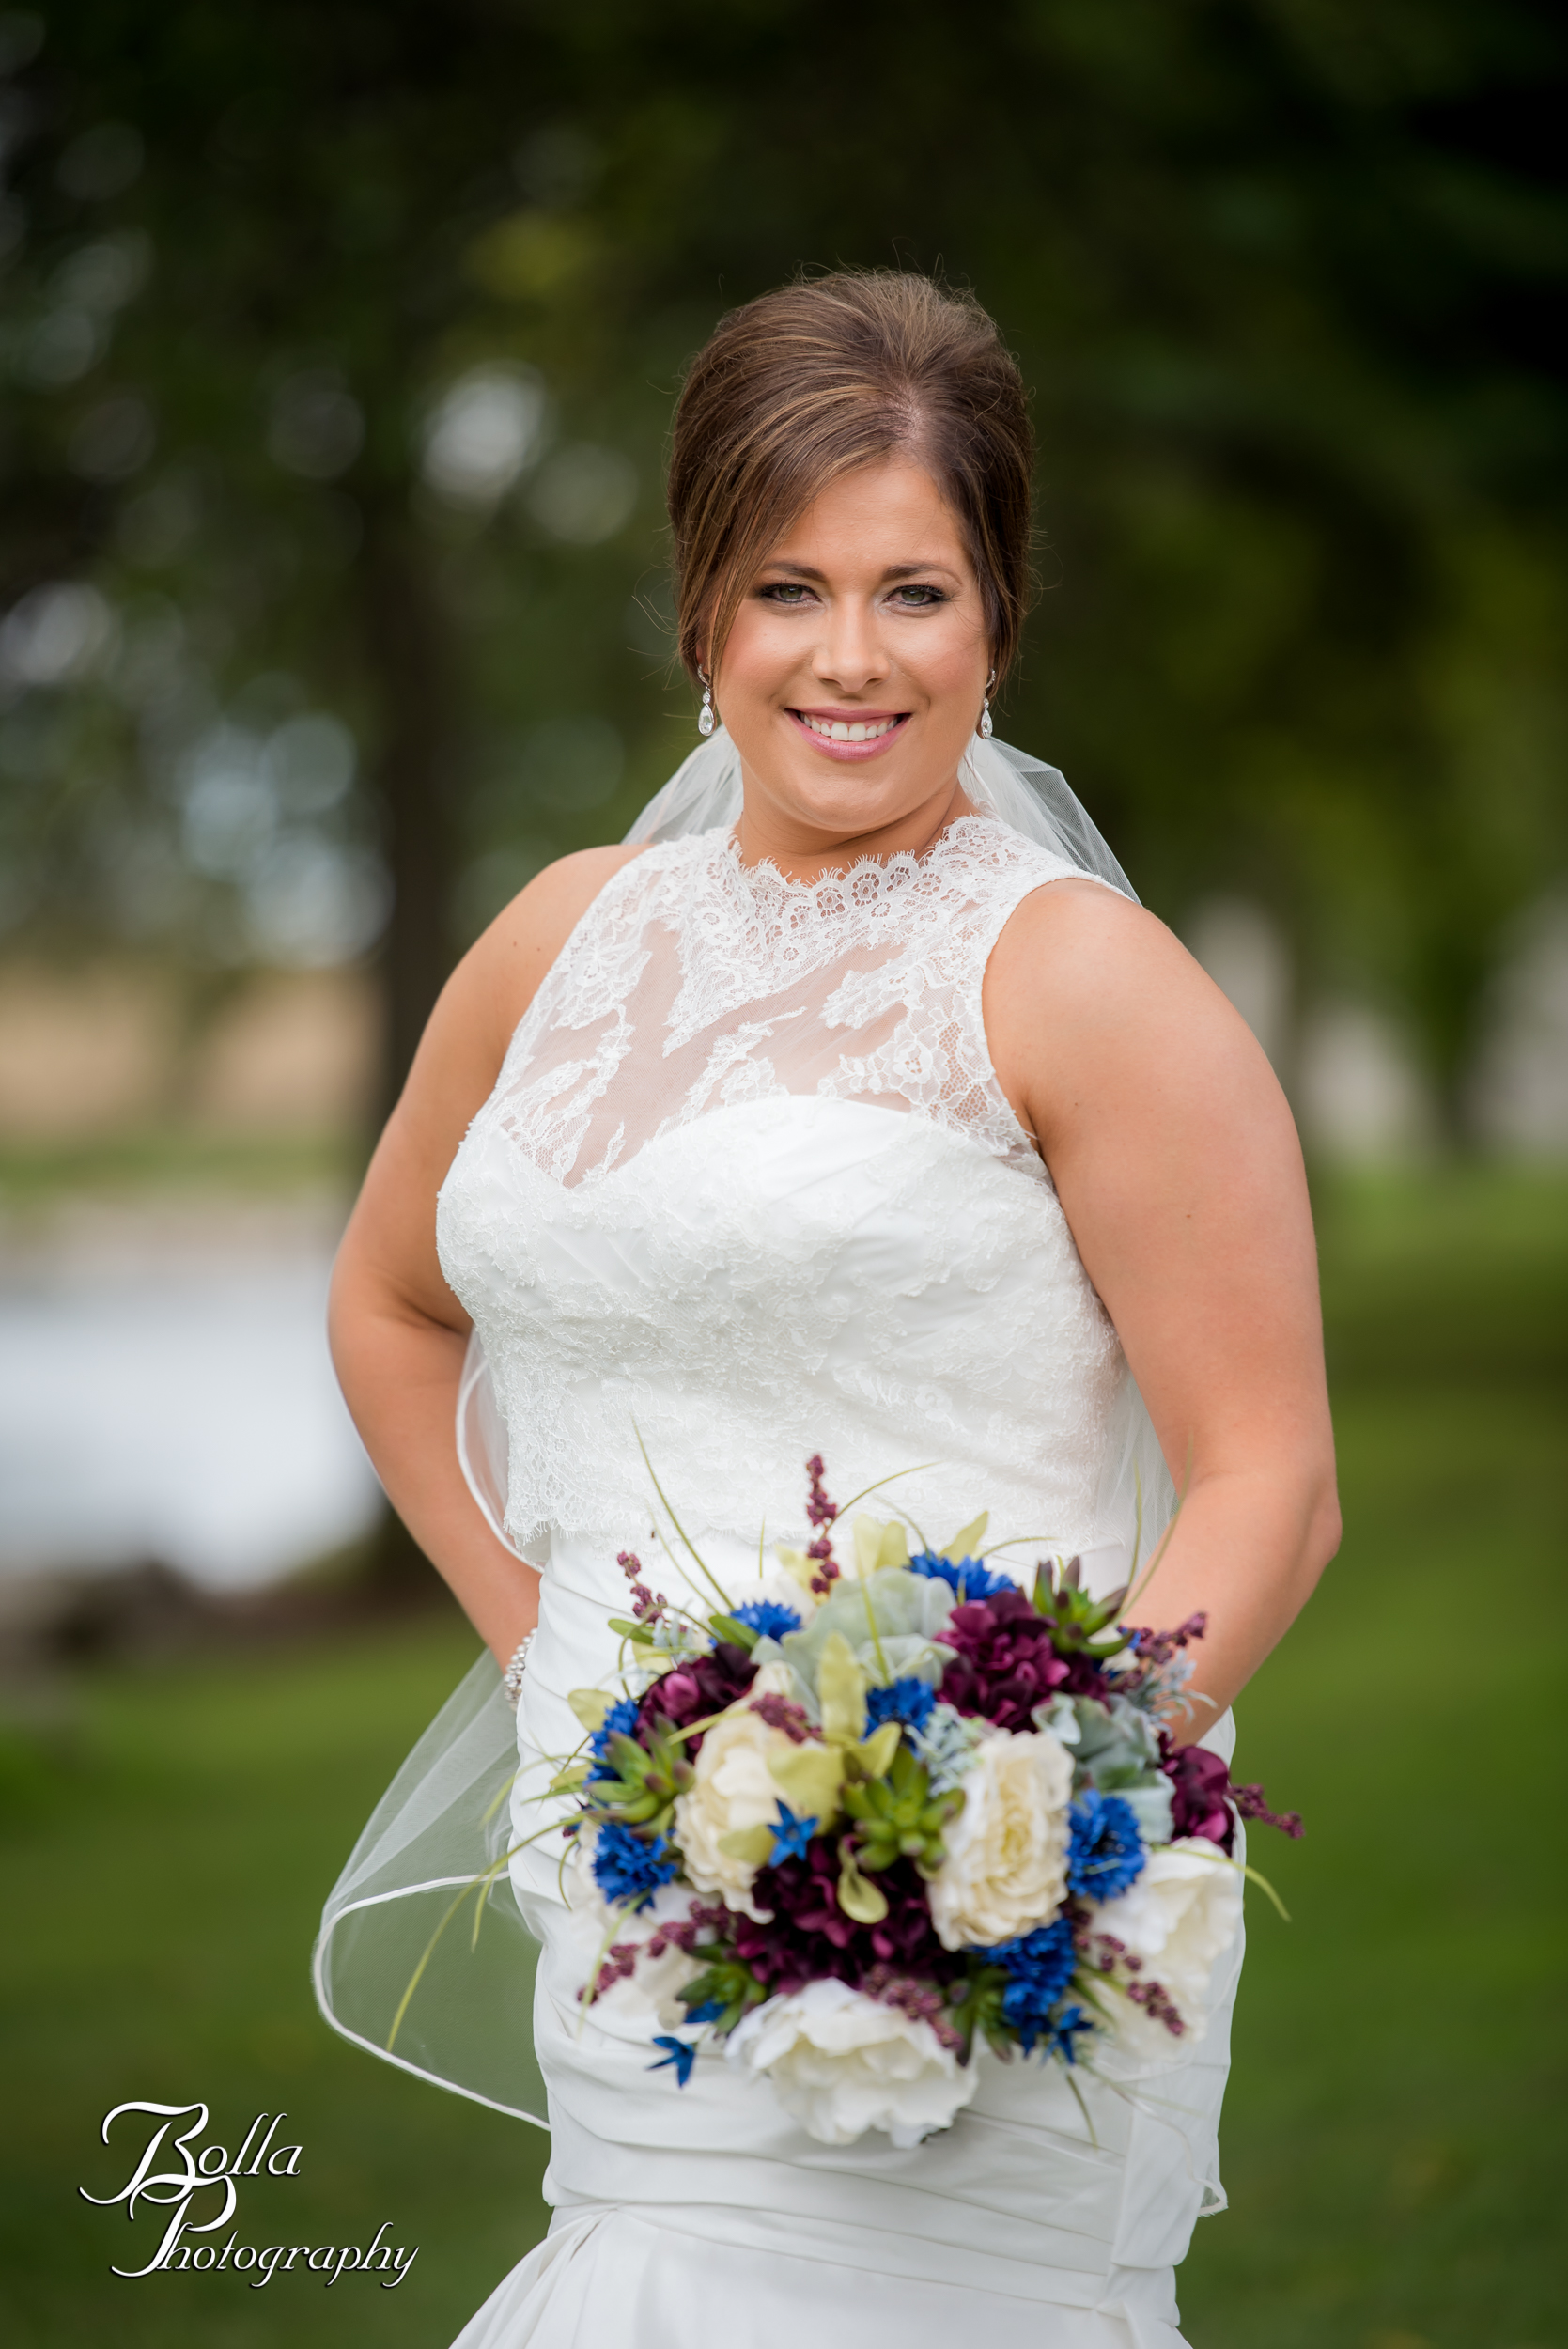 Bolla_photography_edwardsville_wedding_photographer_st_louis_weddings_Heinzmann-0086.jpg